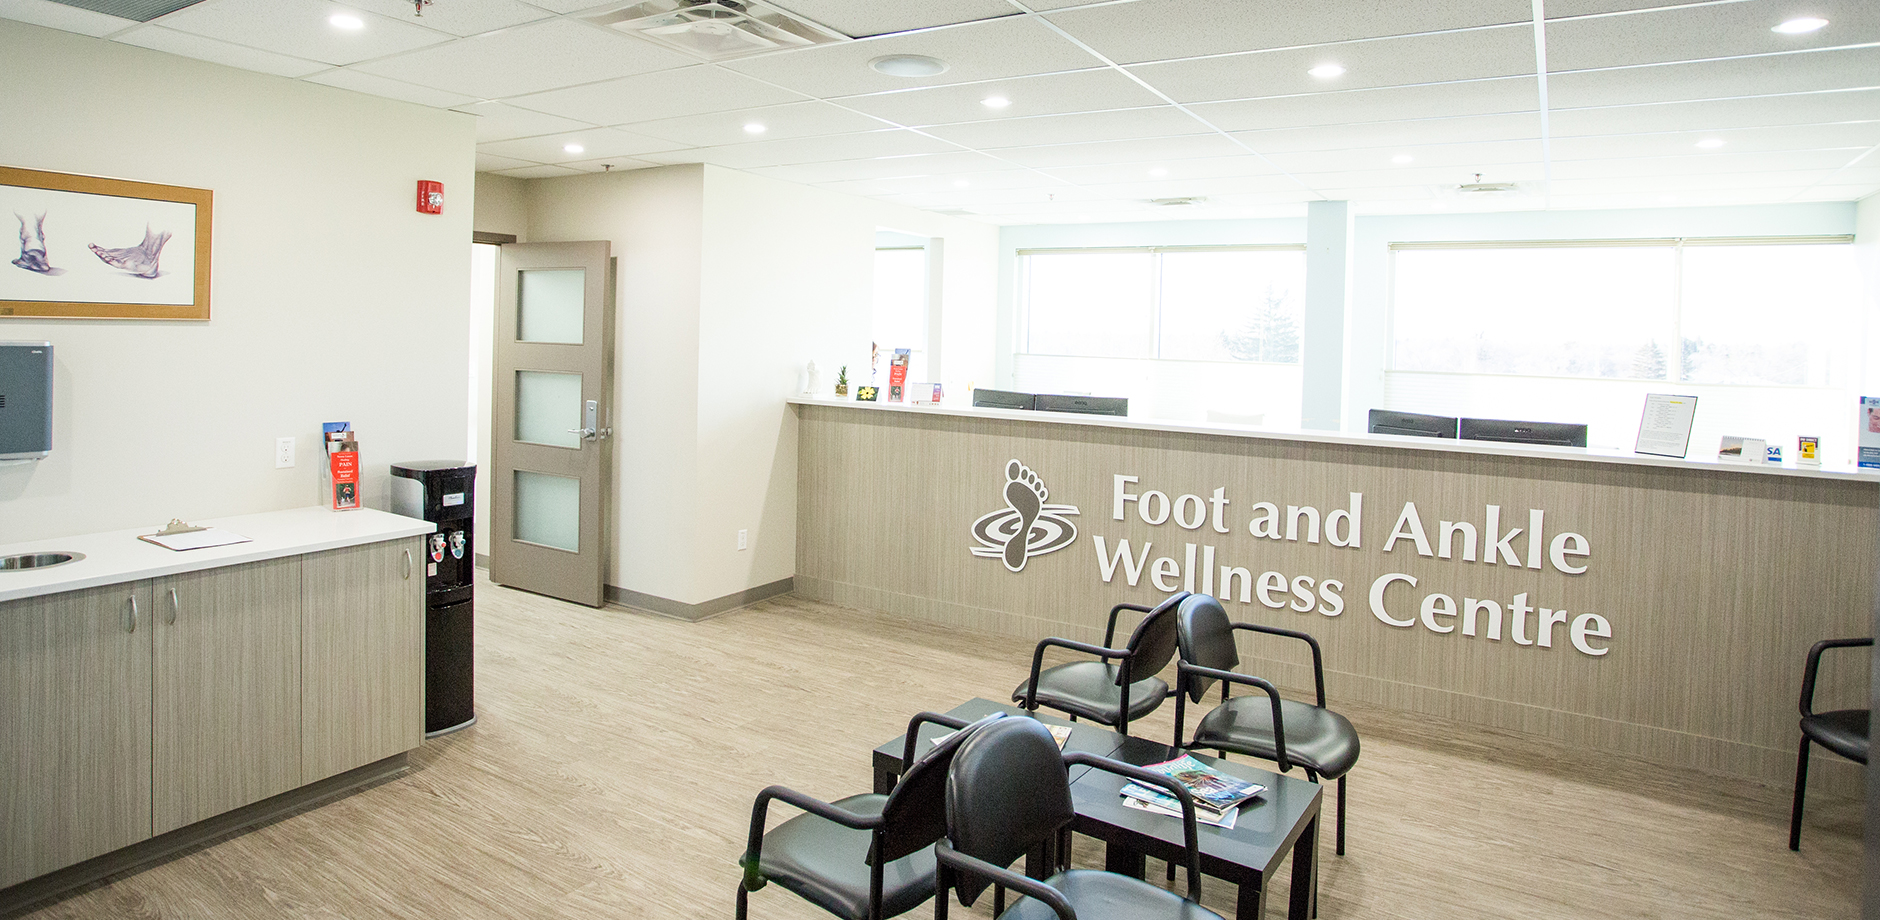 A view of the inside of the Foot and Ankle Wellness Center's waiting room.